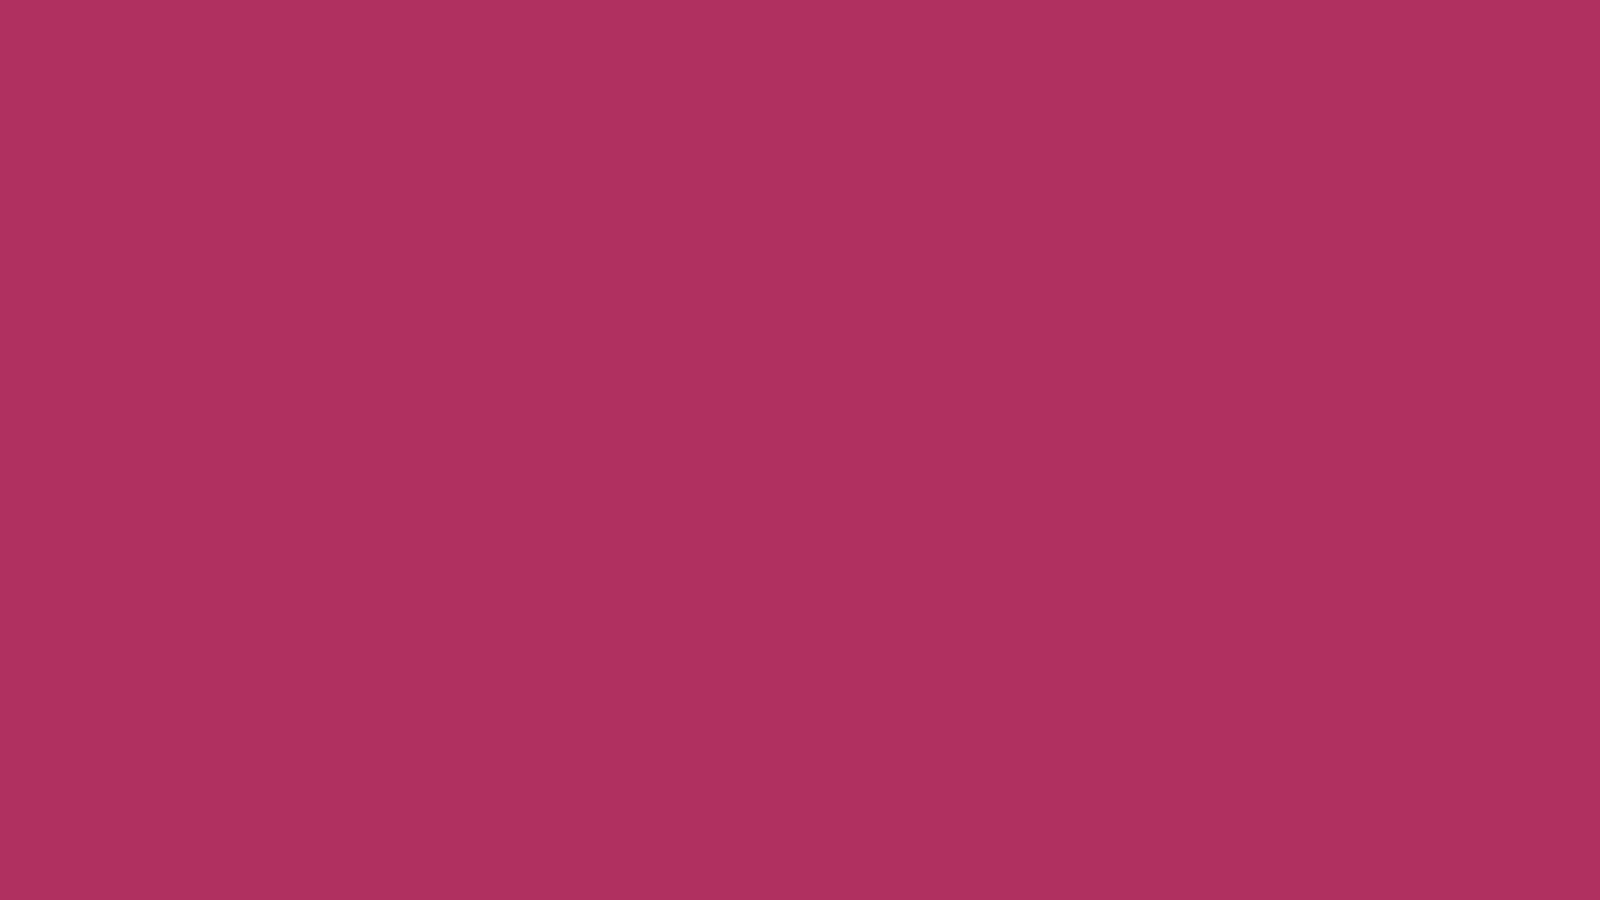 1600x900 Rich Maroon Solid Color Background